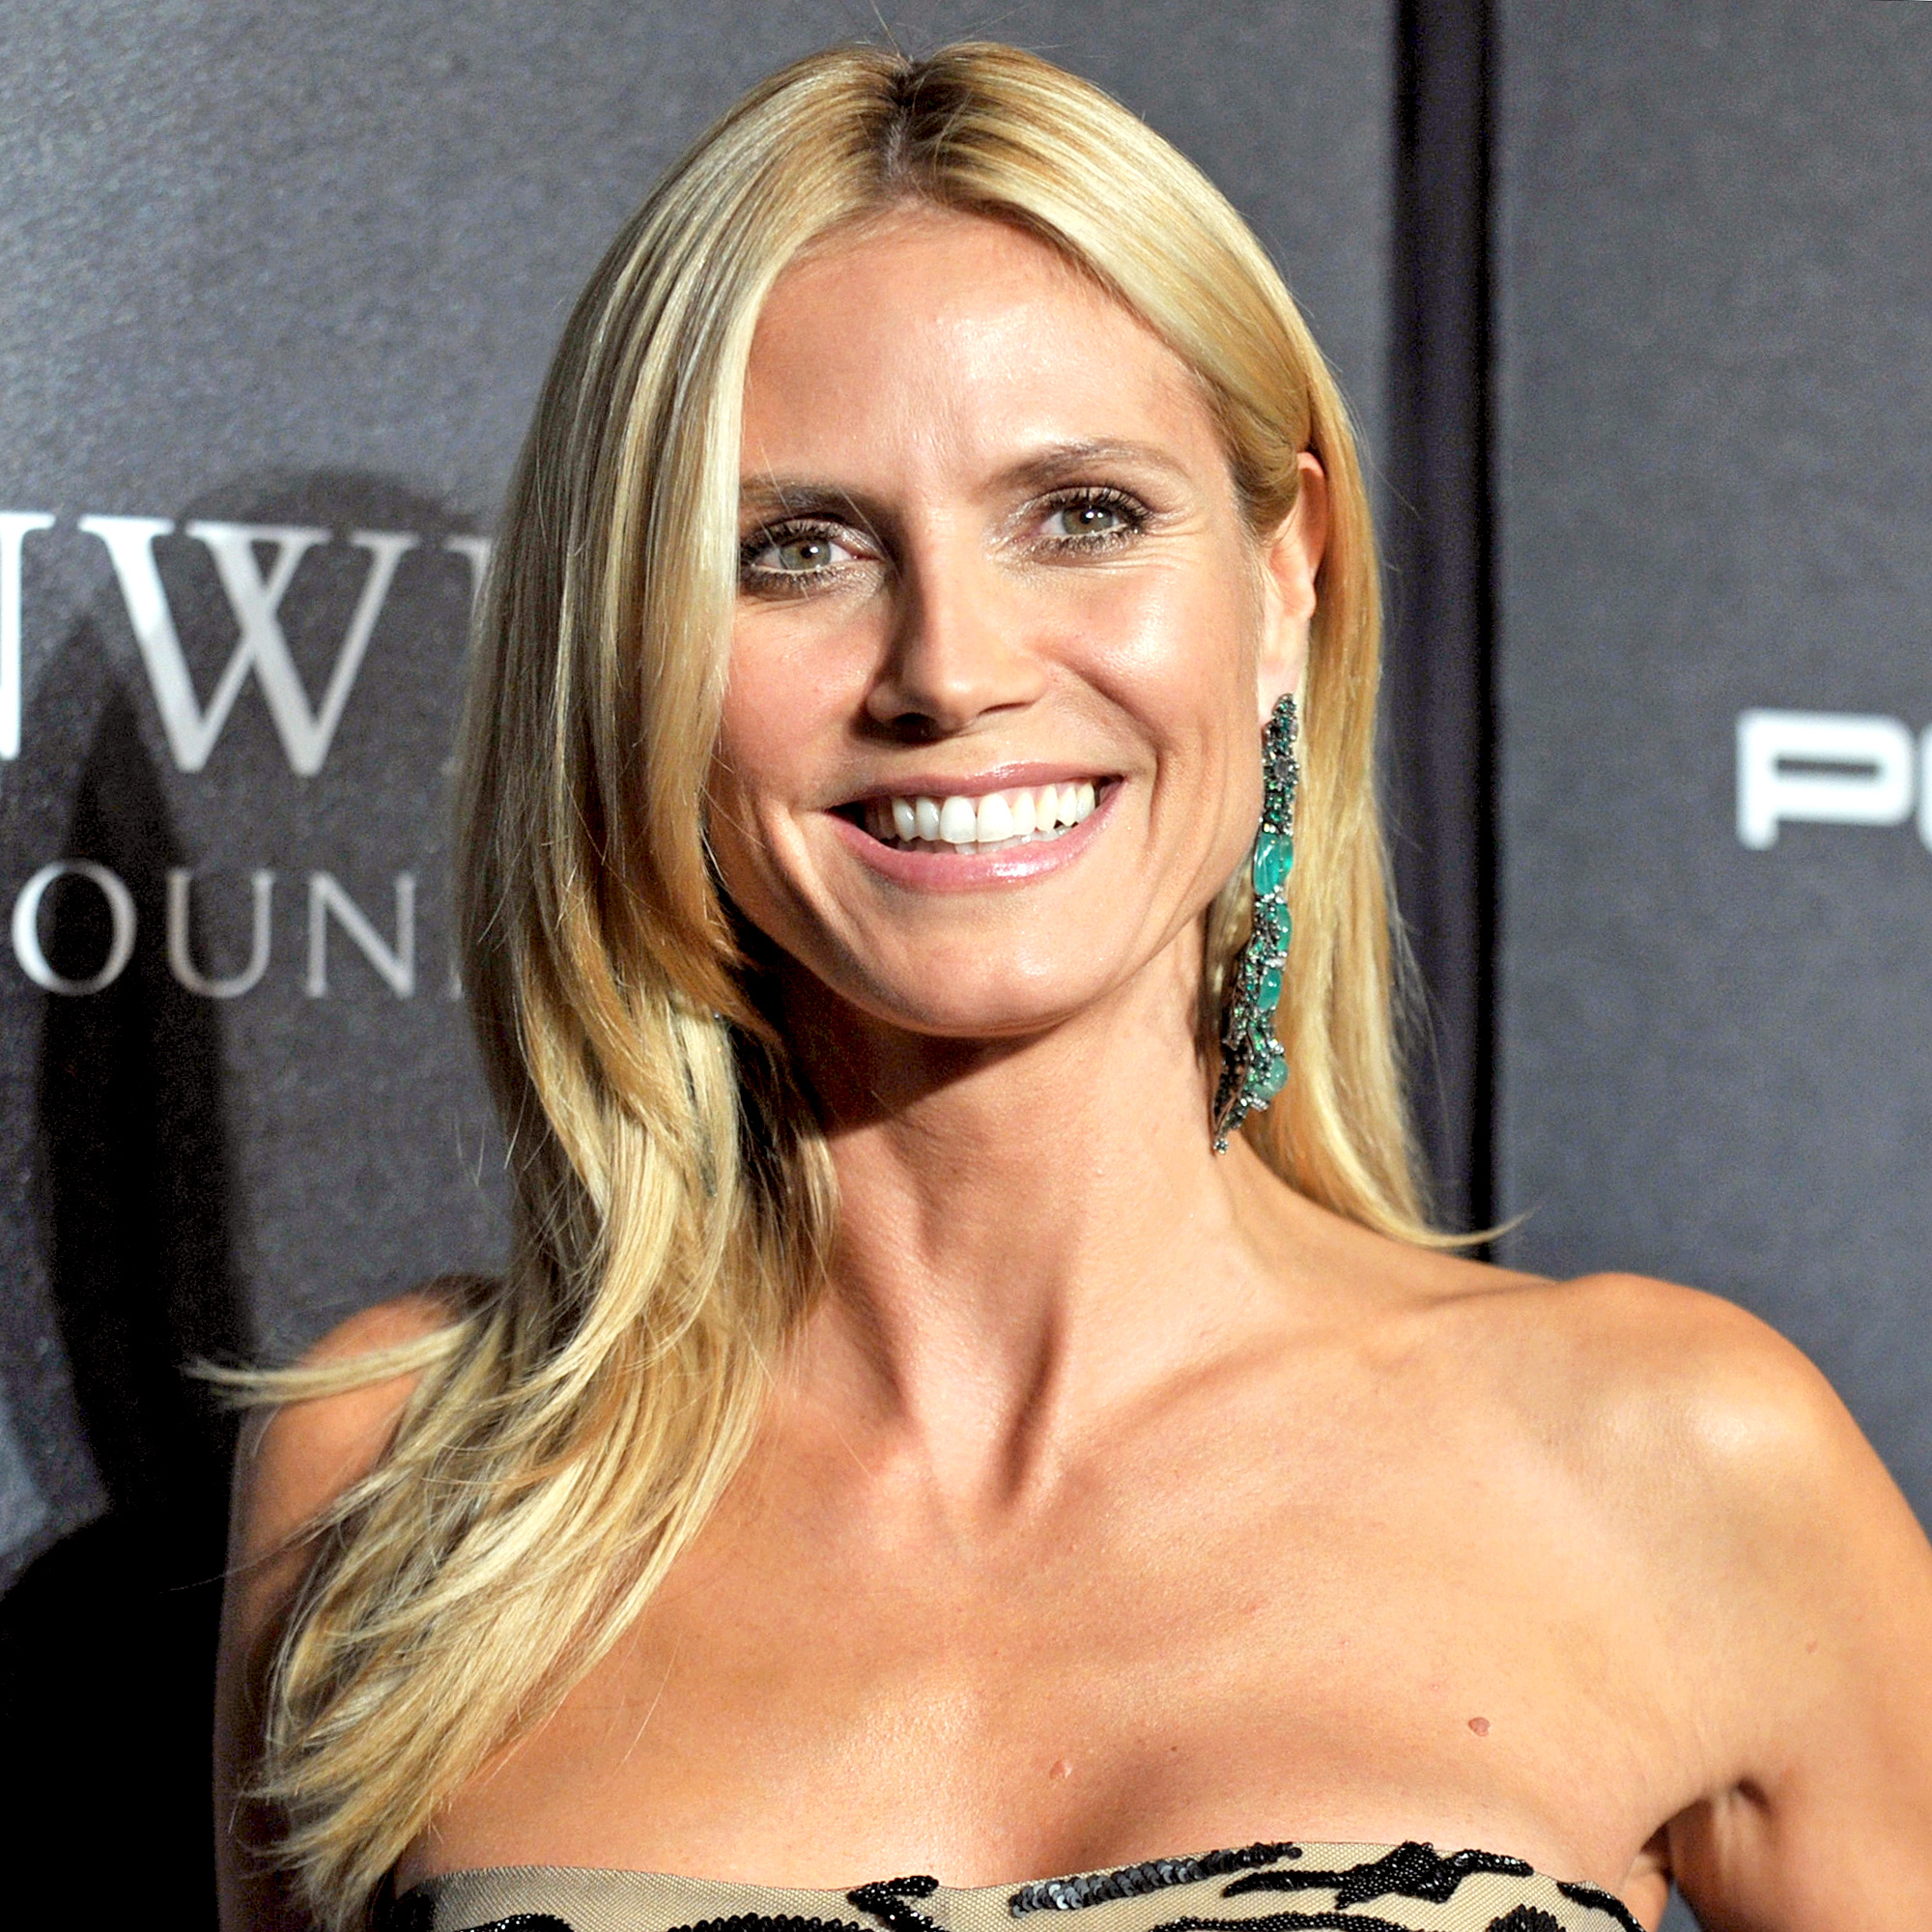 Heidi Klum attends the Angel Ball 2015 hosted by Gabrielle's Angel Foundation at Cipriani Wall Street on October 19, 2015 in New York City.